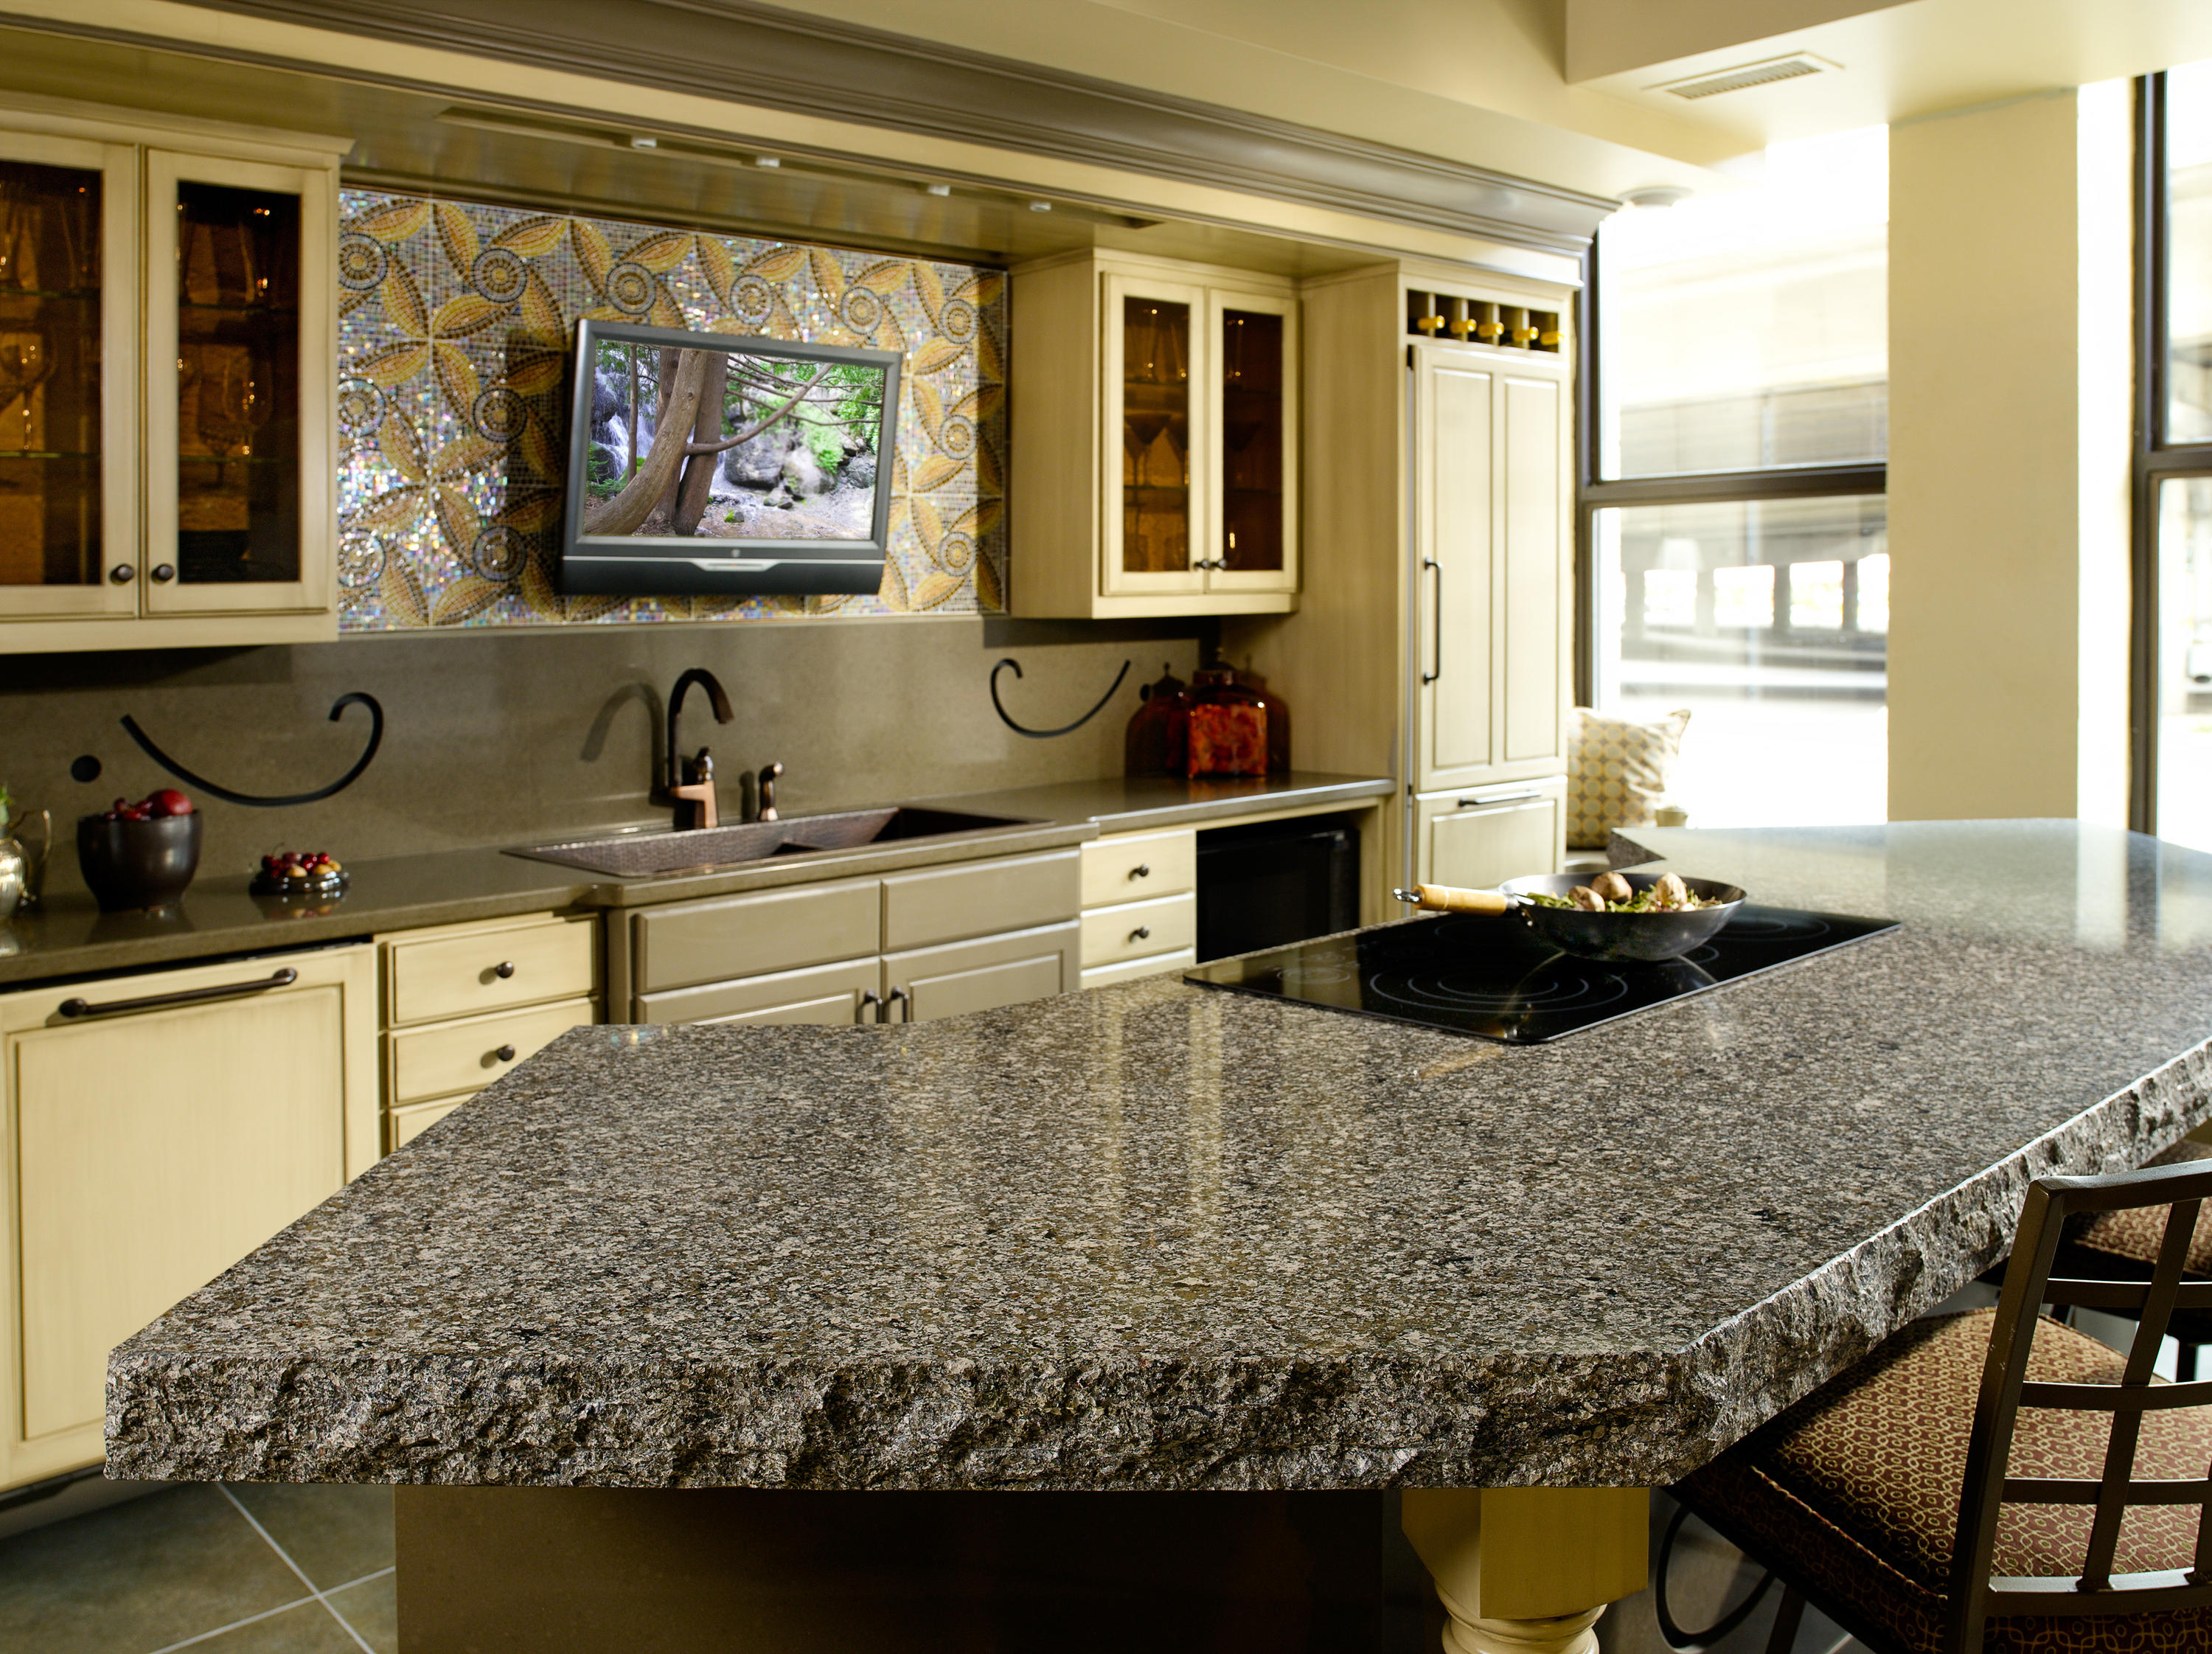 fl expertise the we pros looked quartz countertop miami granite countertops top picked best serving at tampa and